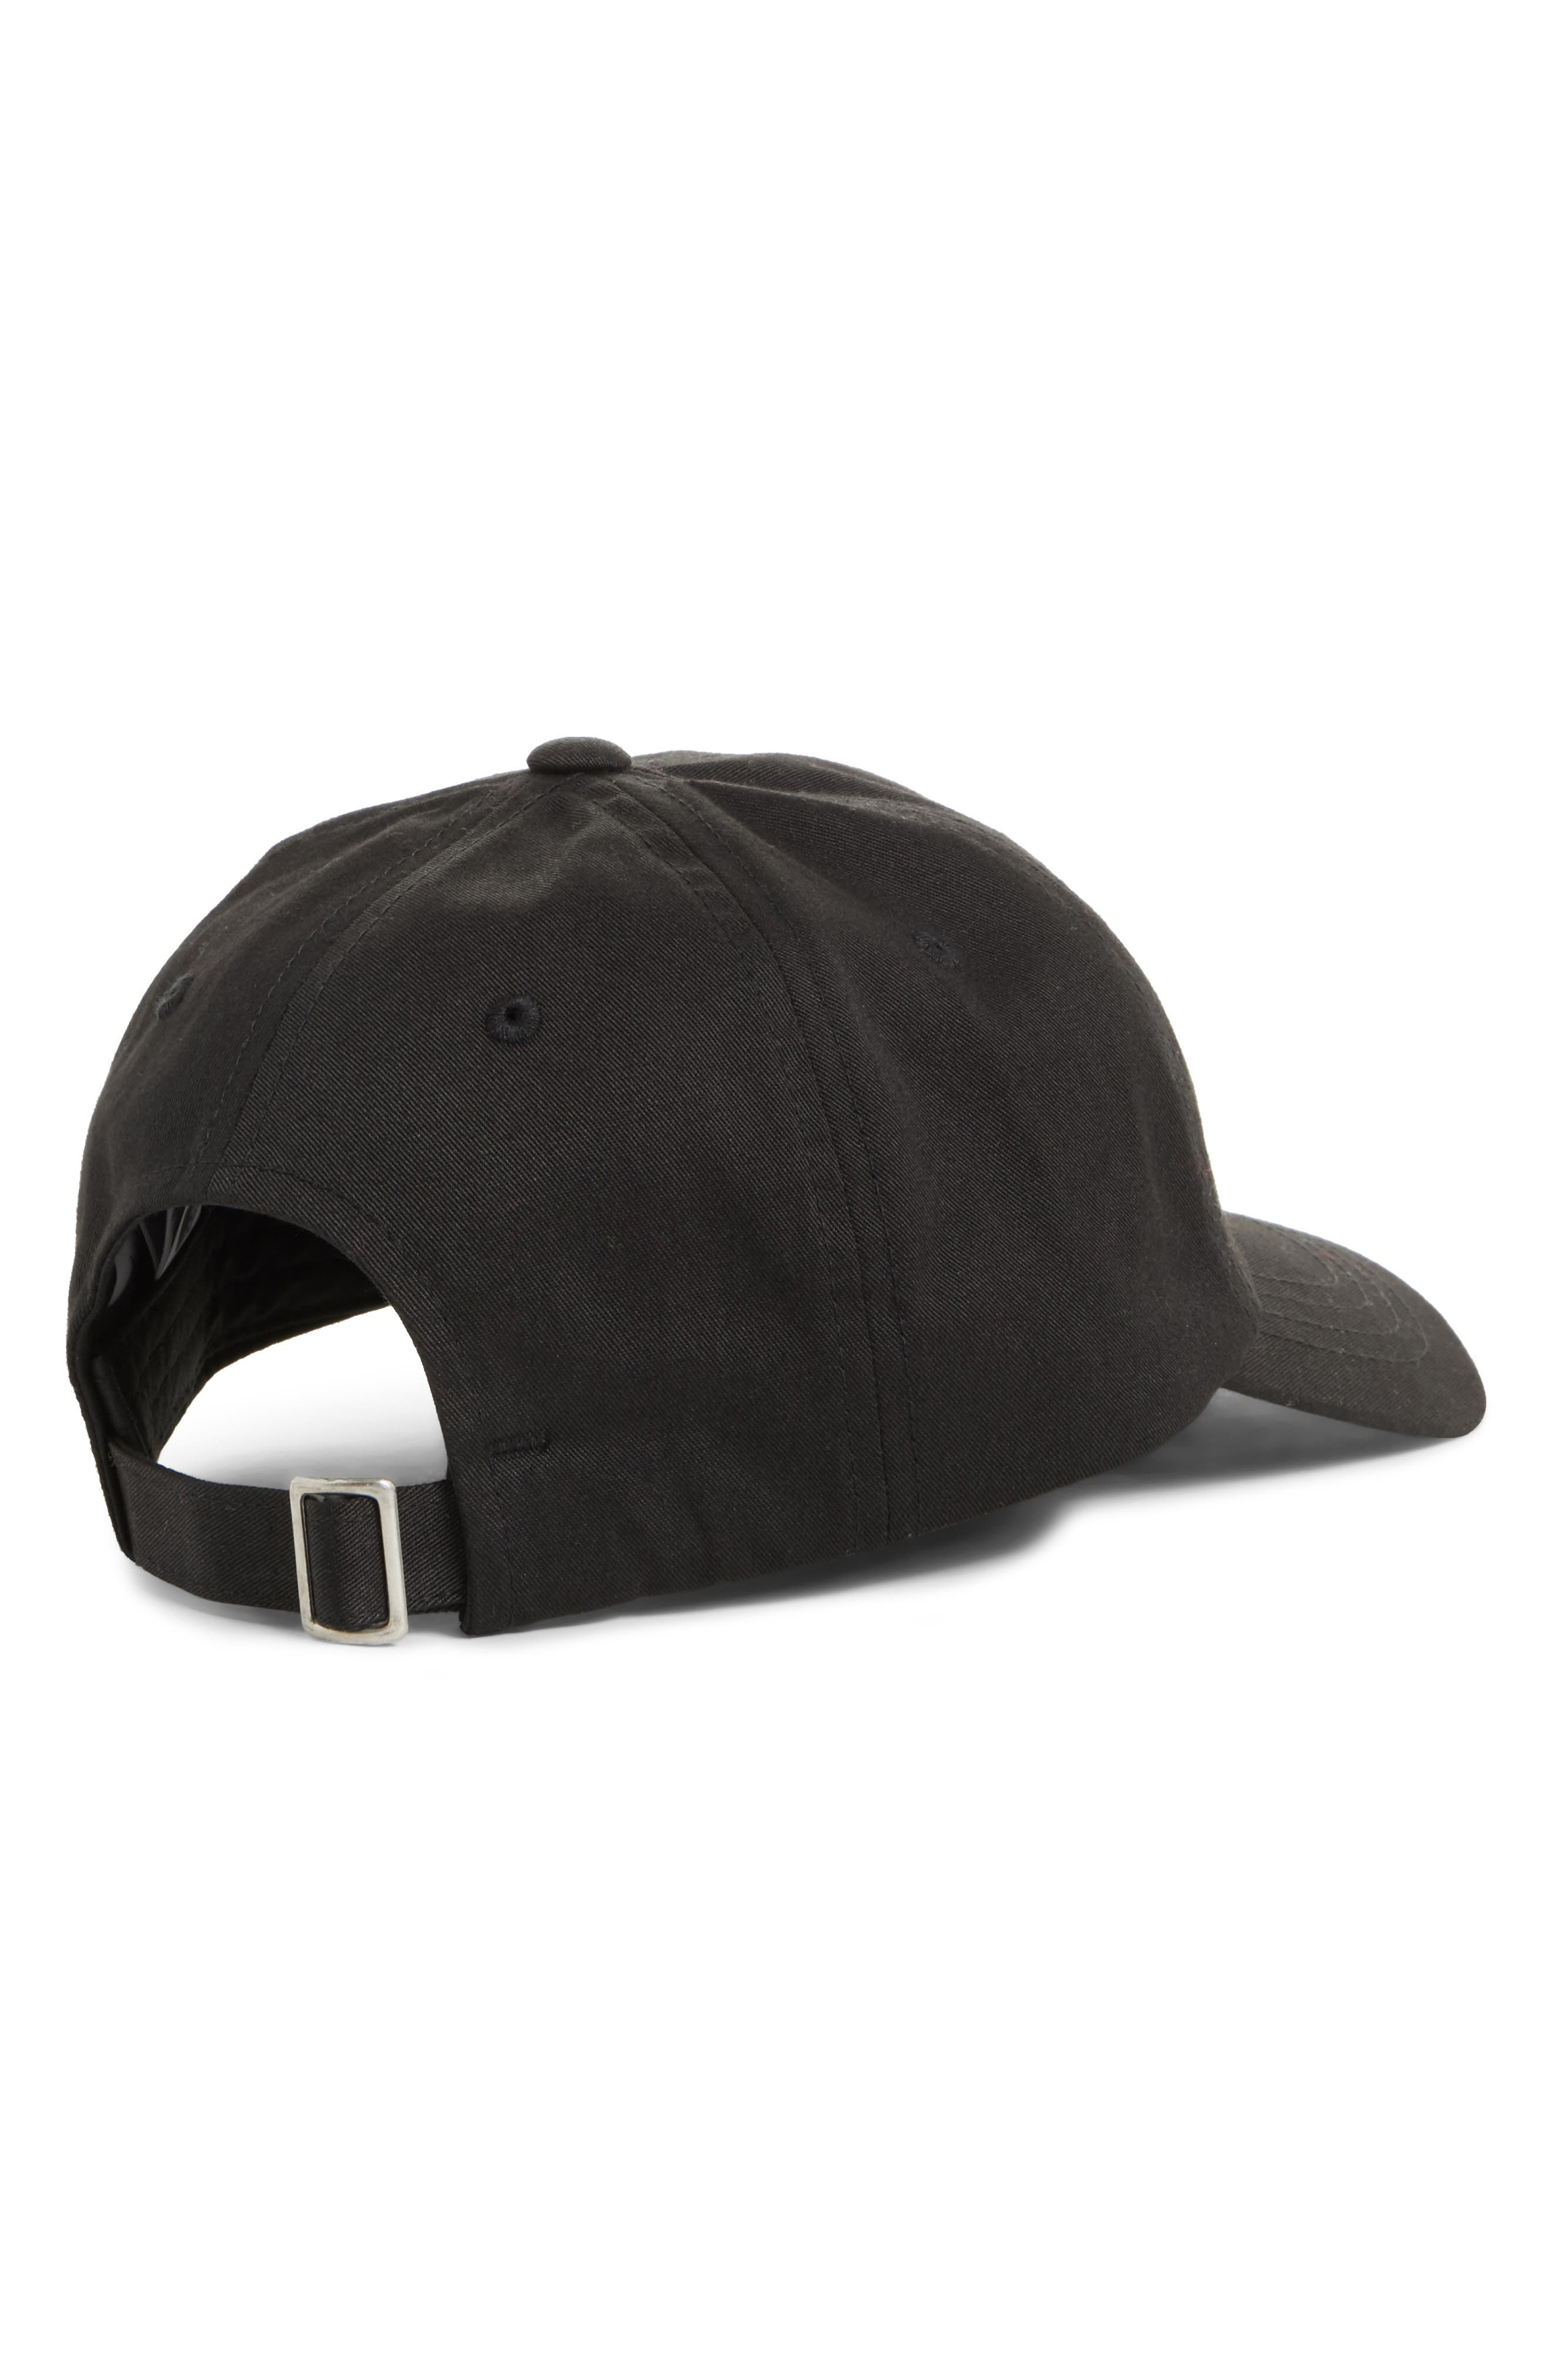 Norm Poppy Embroidered Adjustable Cap,                             Alternate thumbnail 2, color,                             Tnf Black